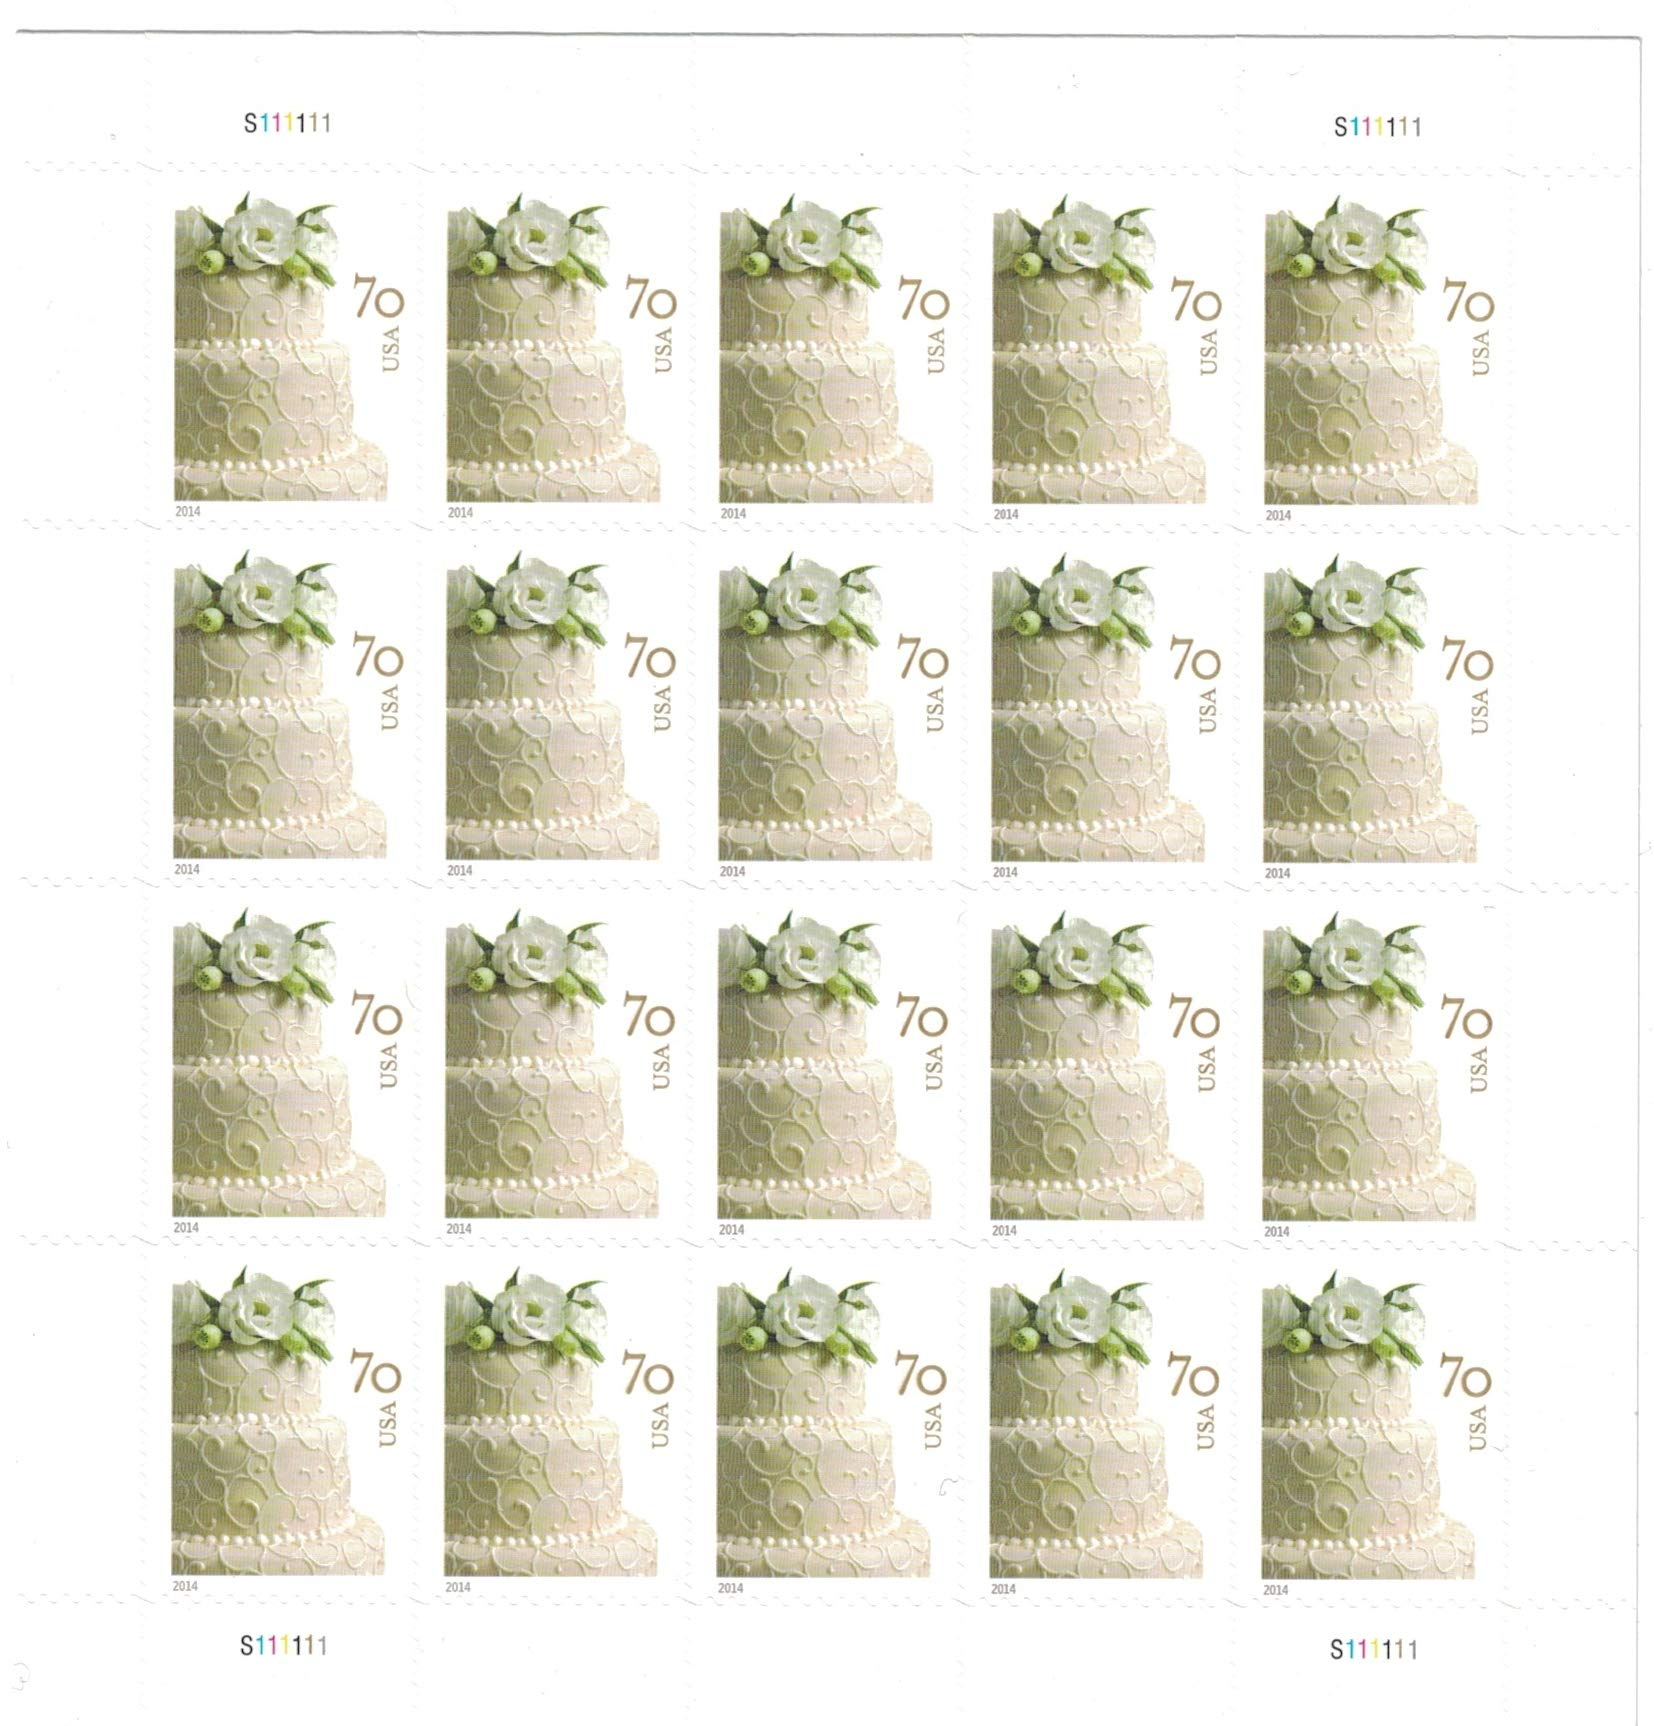 USPS Wedding Cake 70-Cent Two-Ounce Stamp Sheet of 20 (2 Ounce Rate)